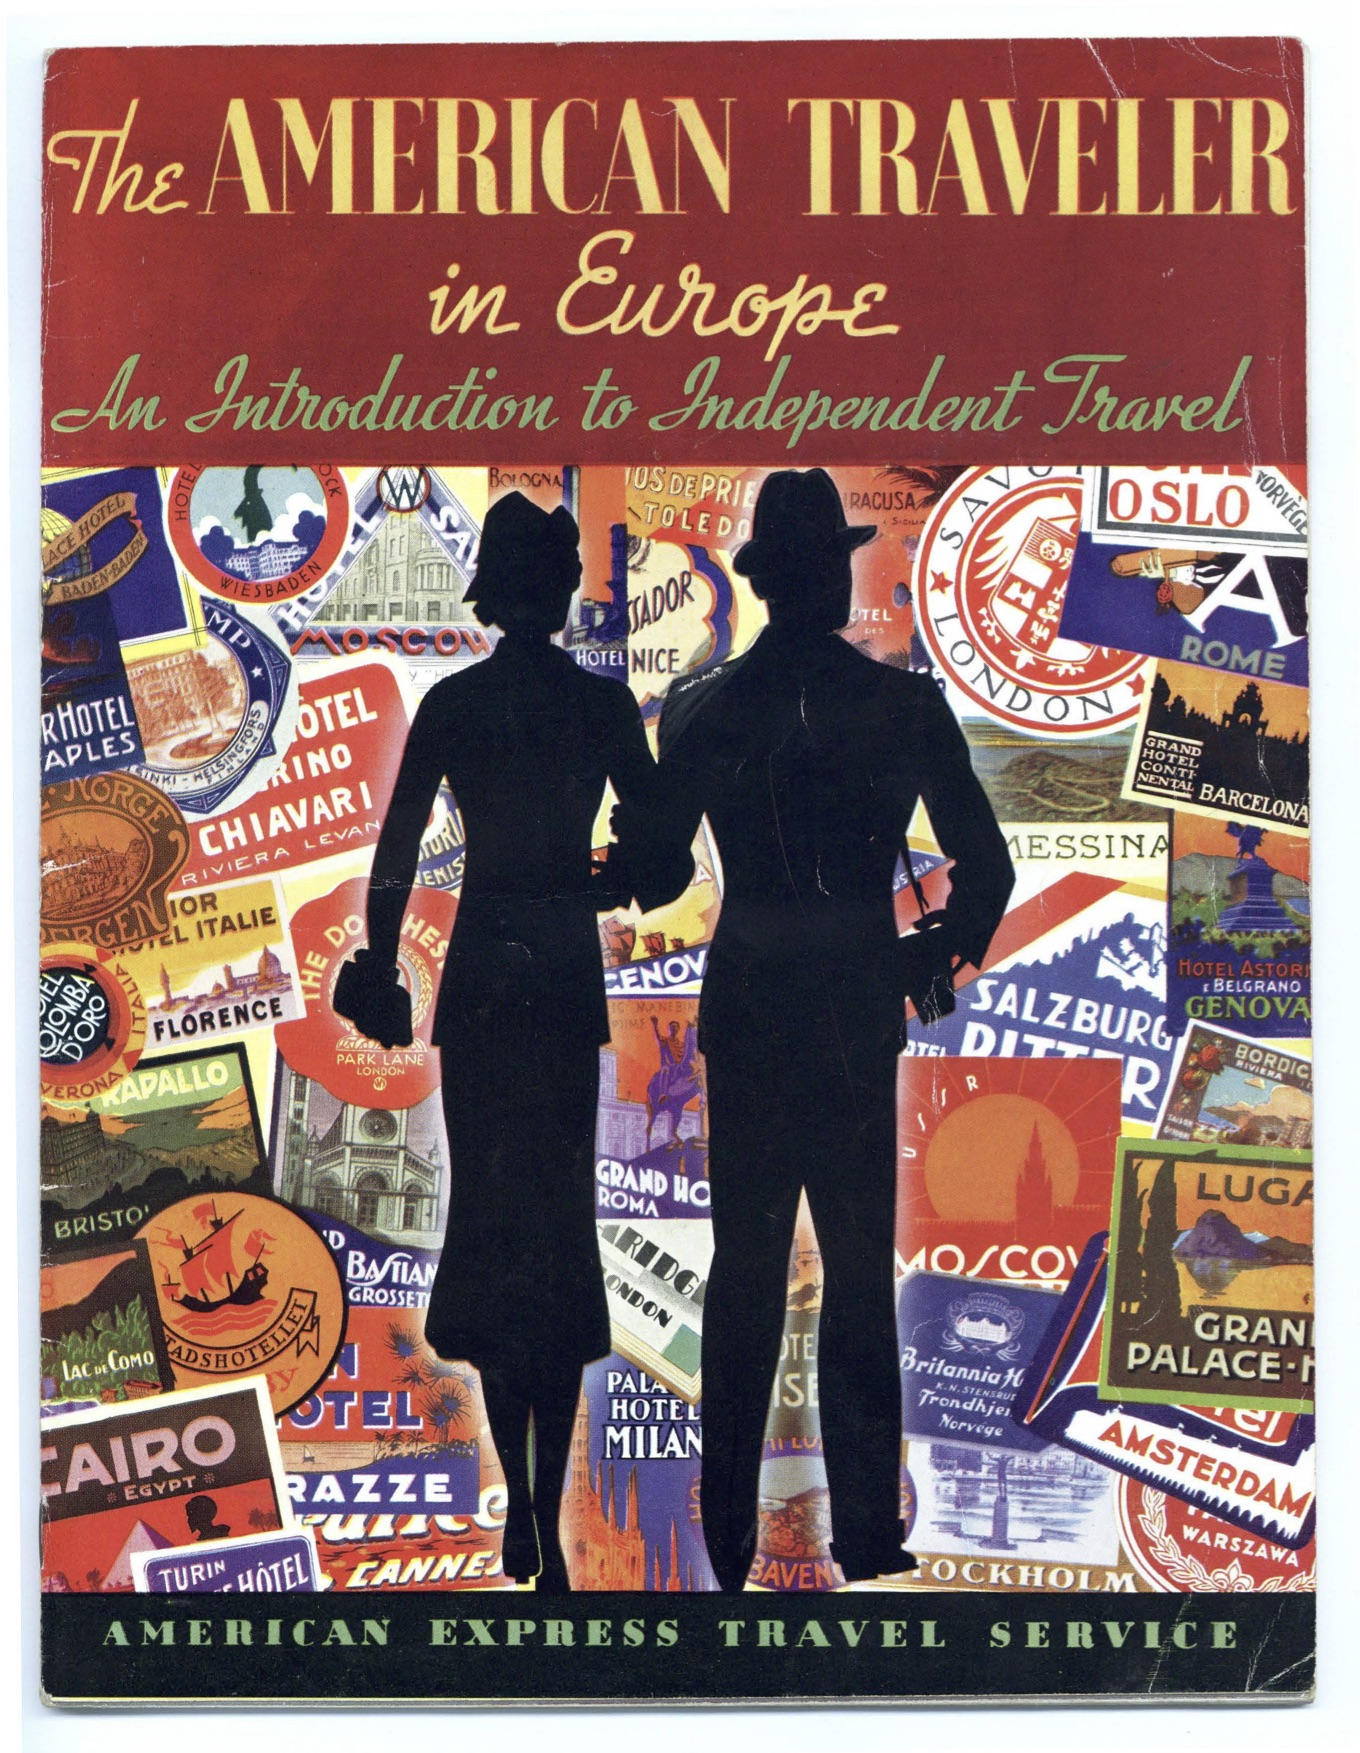 The American Traveler in Europe Booklet